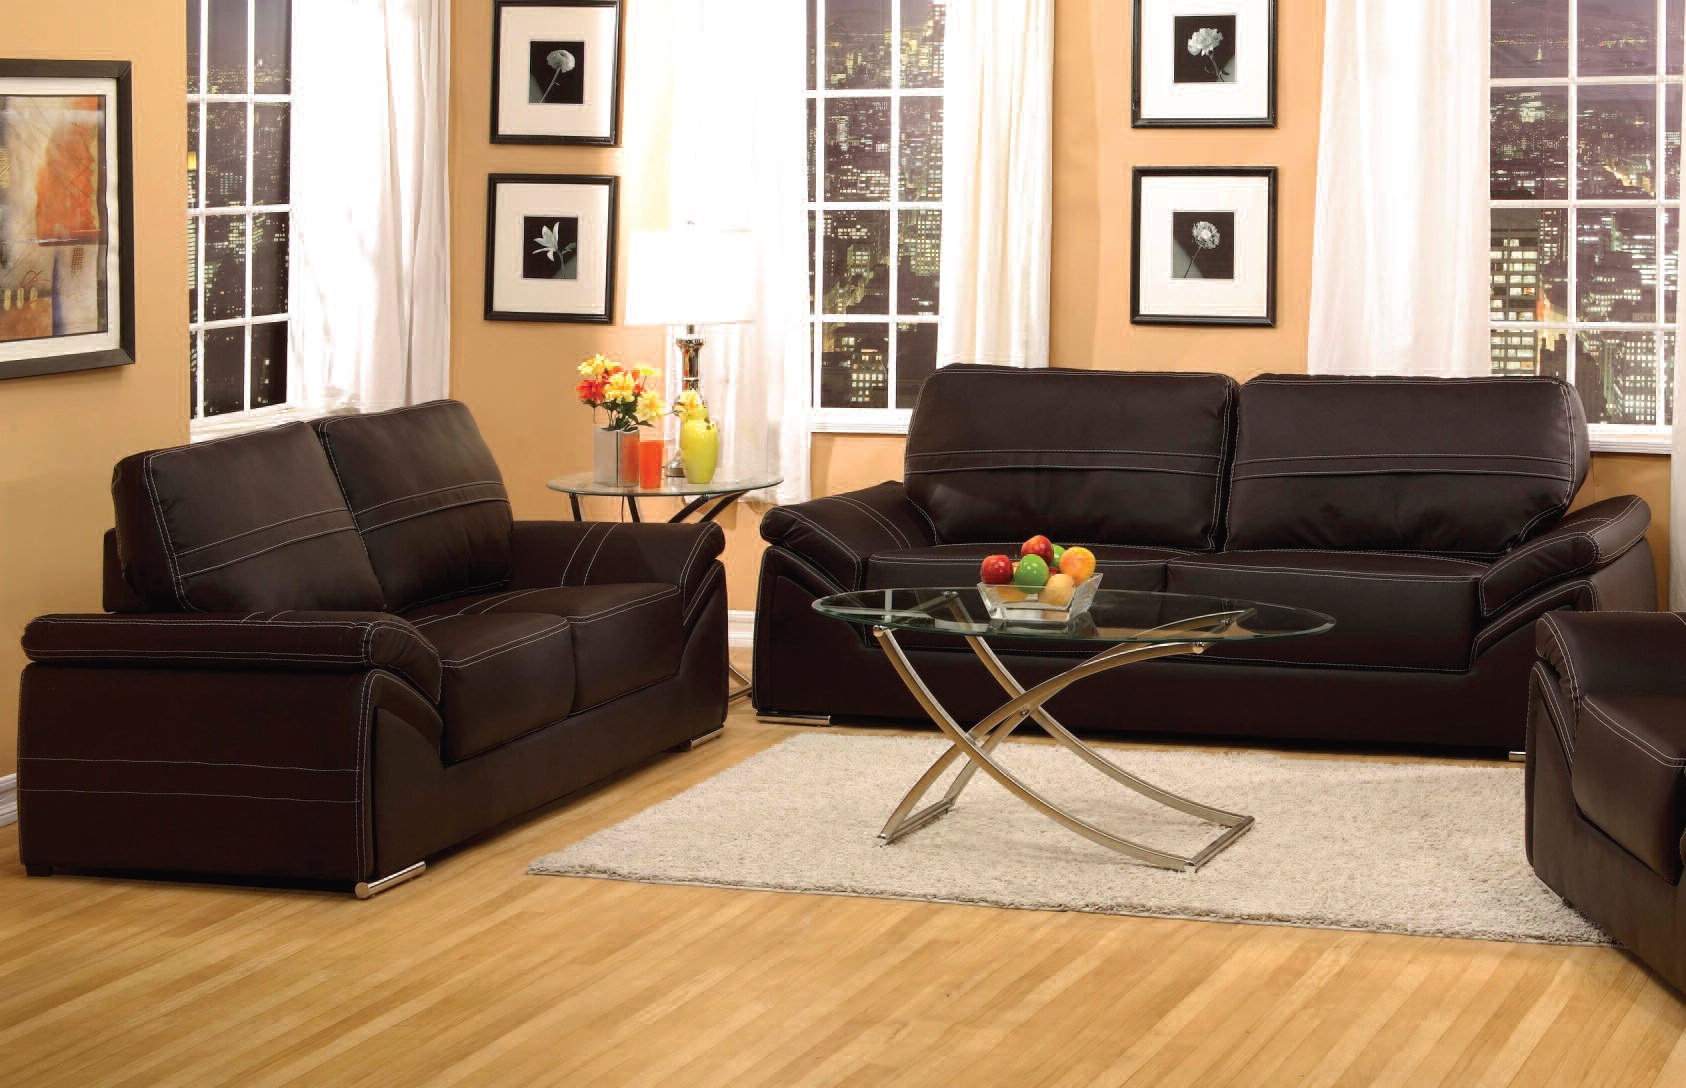 Acme furniture ember espresso living room set the classy for Living room sets under 700